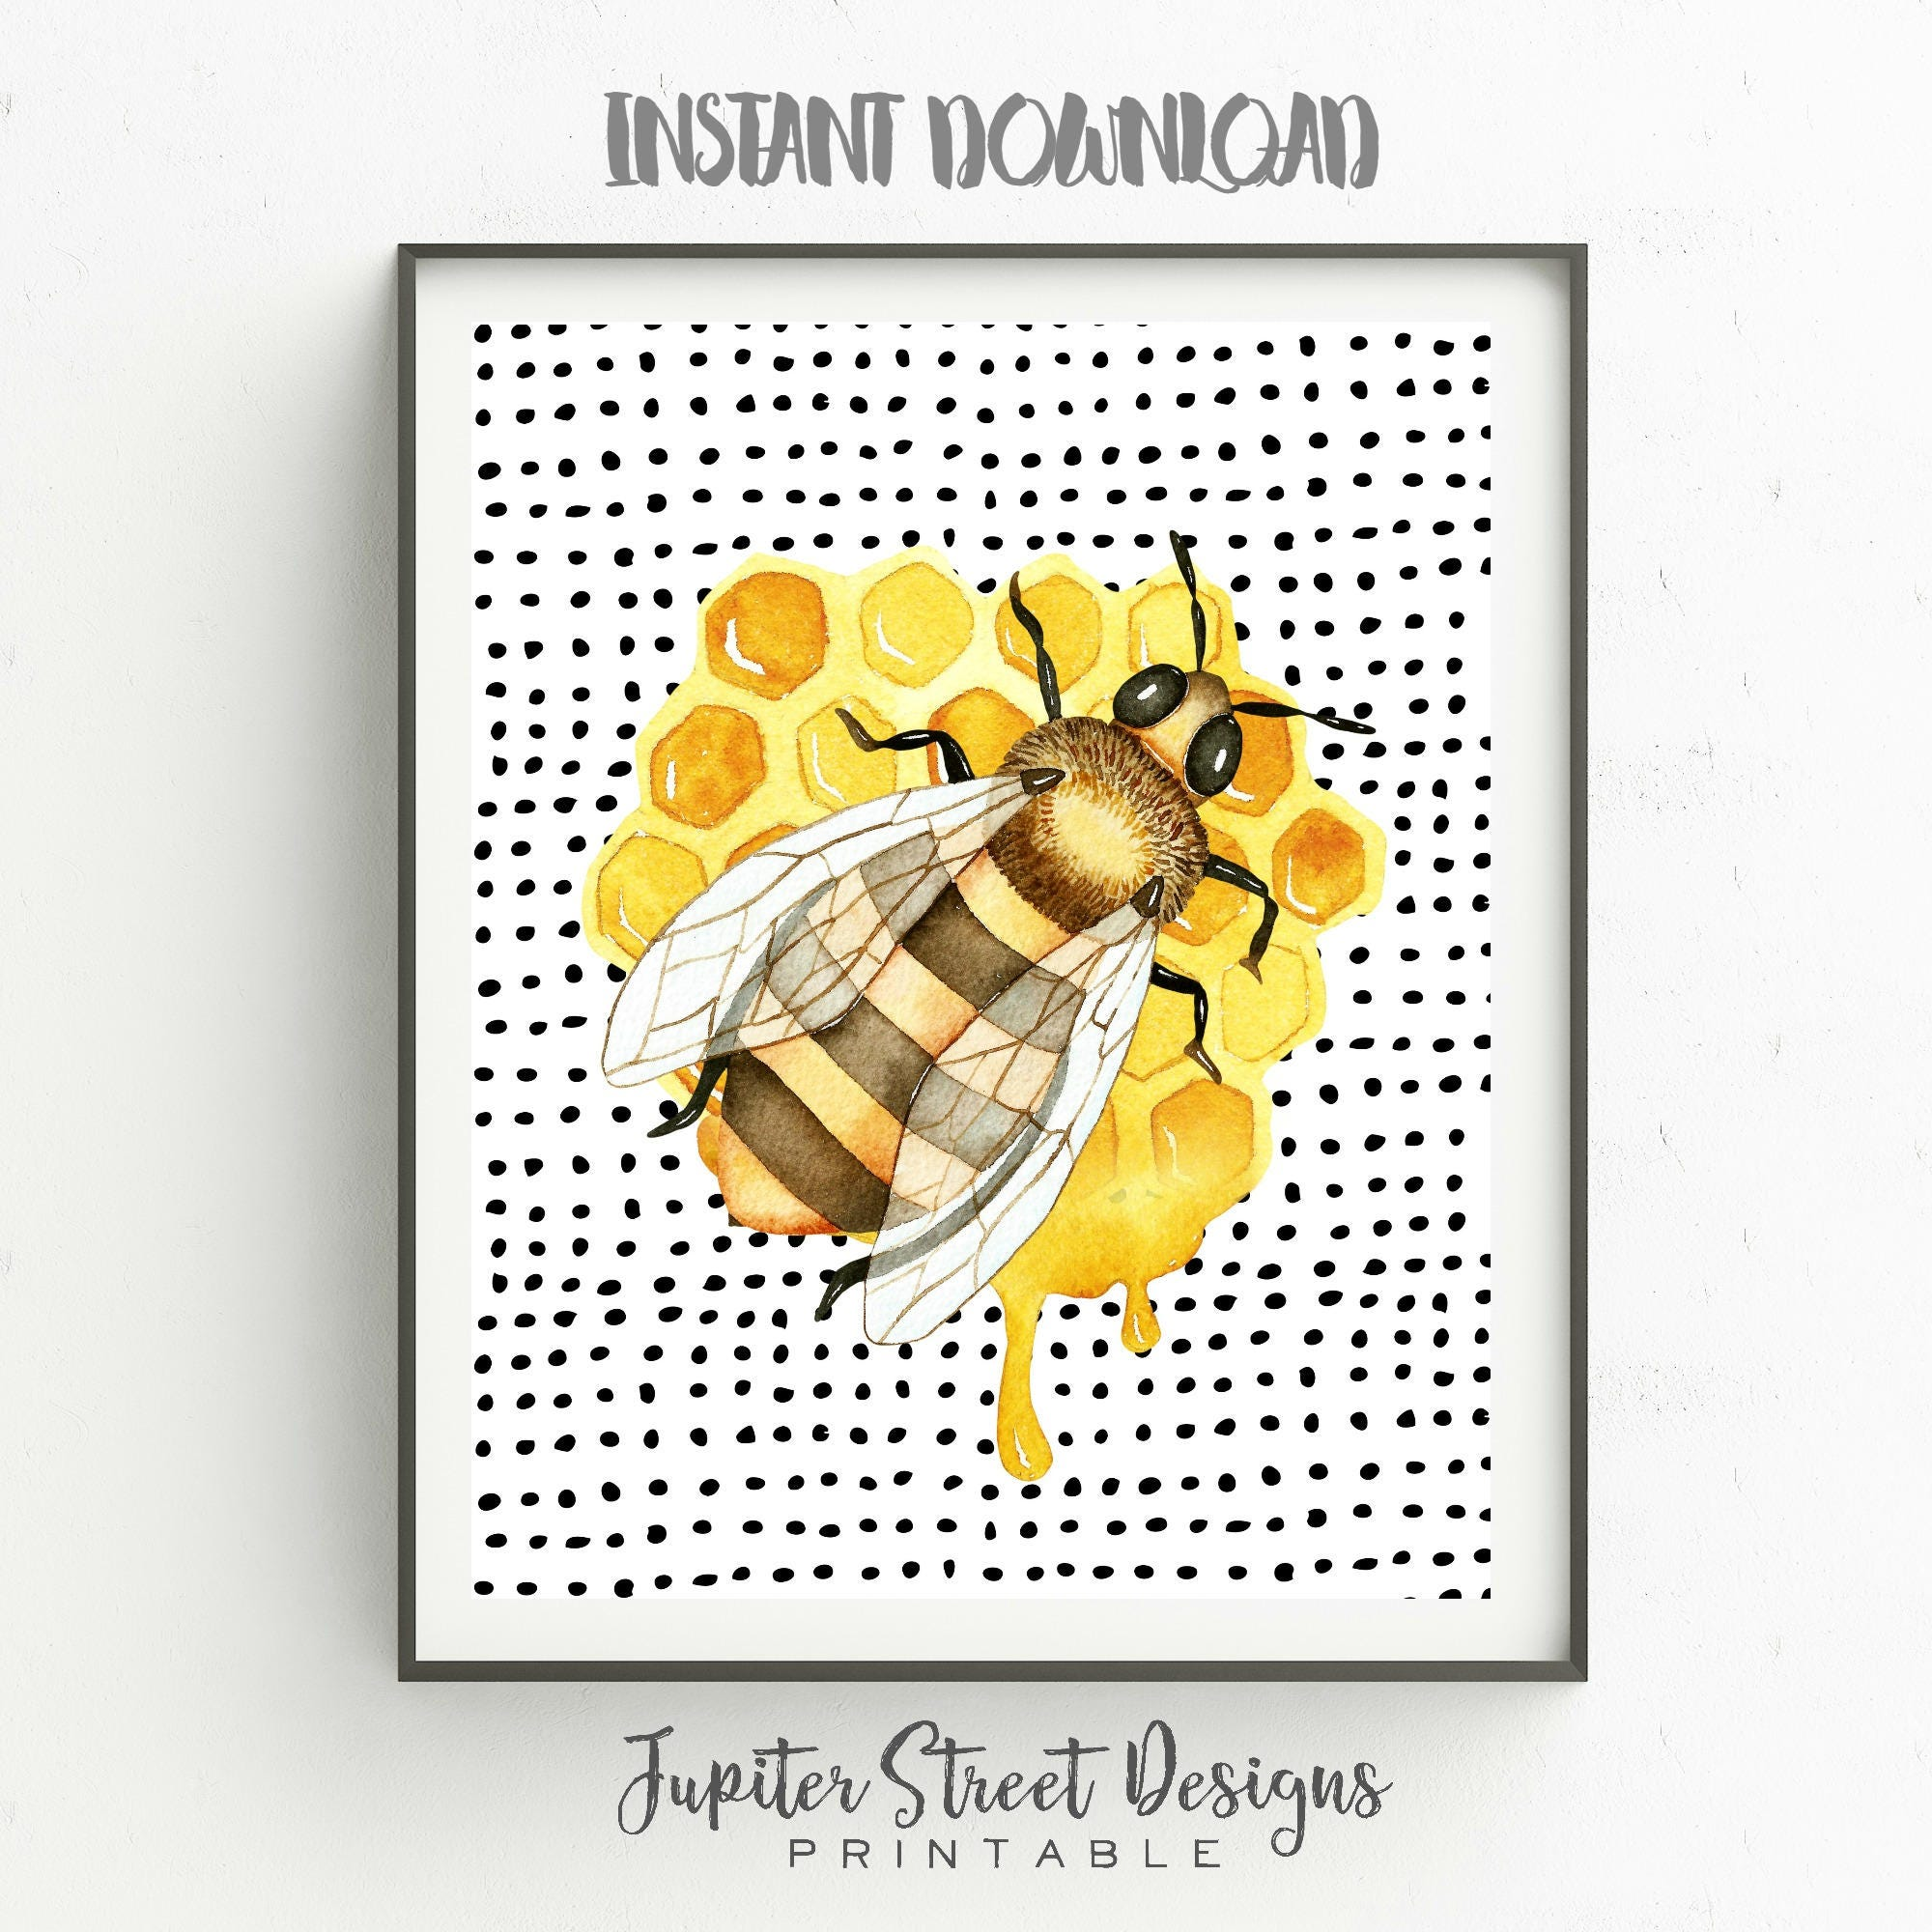 Bee Art-Bumble Bee Wall Print-8 x 10 INSTANT DOWNLOAD-Home | Etsy